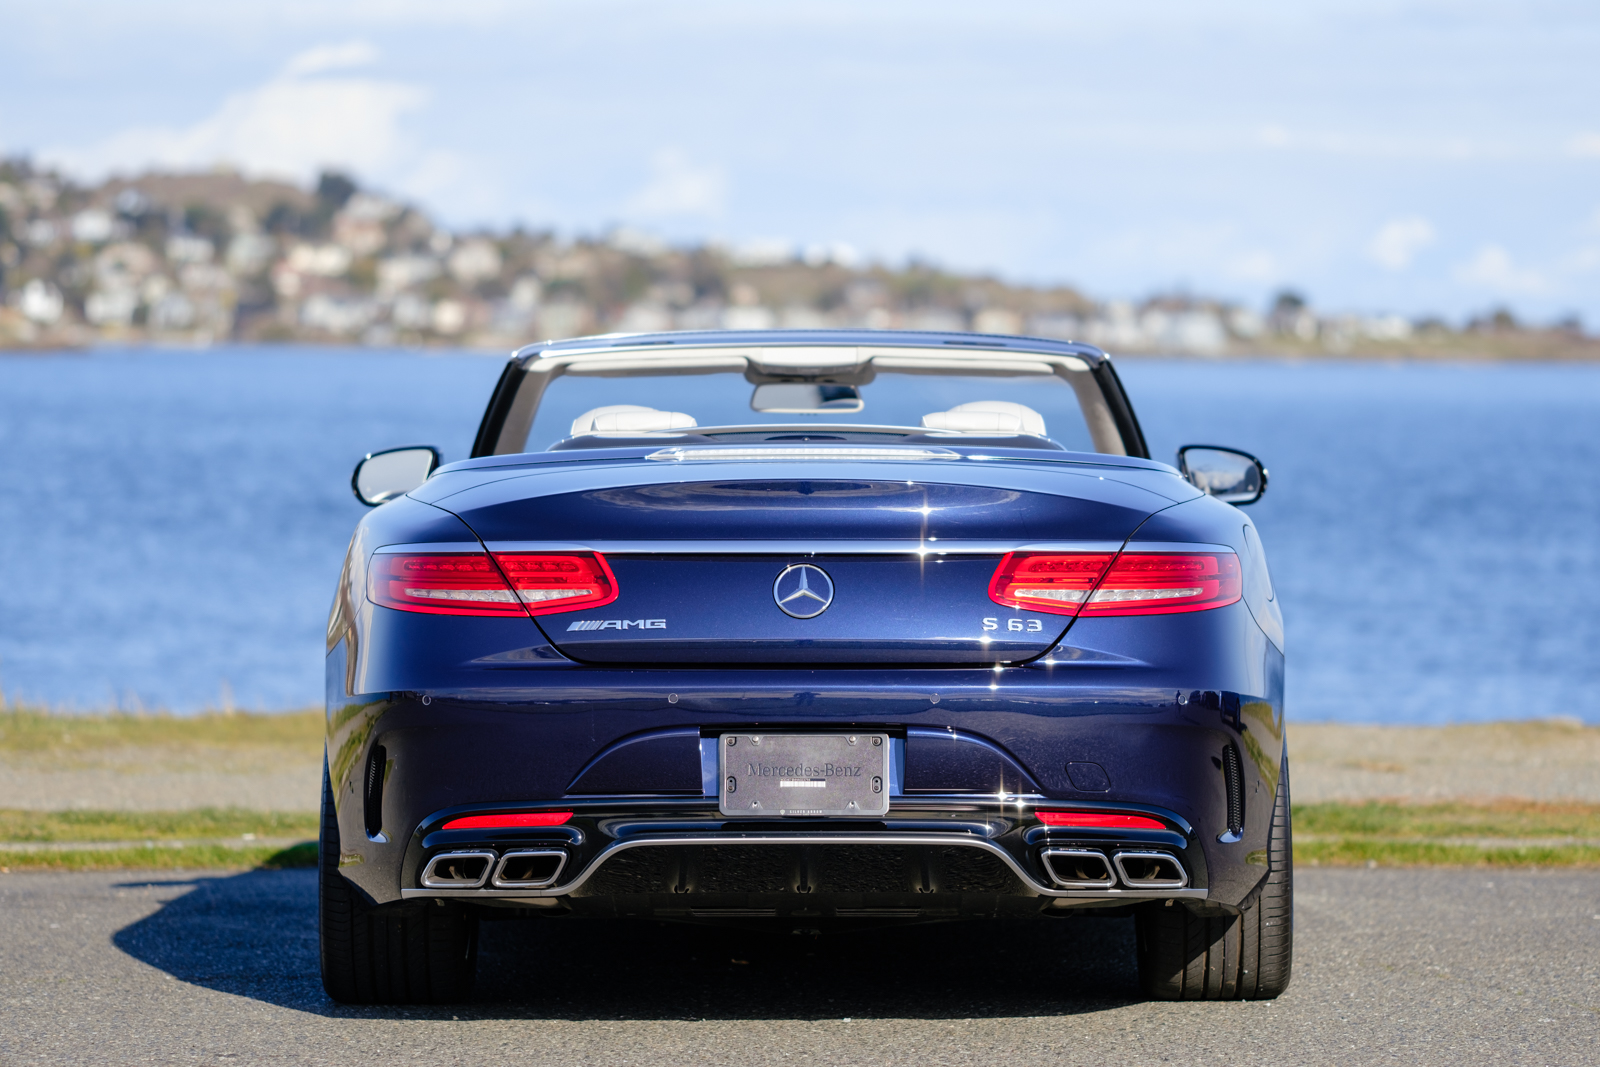 Mercedes Benz S Amg Cabriolet additionally Mercedes Amg Engine Production Factory In Affalterbach Germany Female Dt Bkt likewise Brabus Cls Amg X together with Mercedes Benz S Amg Cabriolet besides Frankfurt Brabus Biturbo New E Amg S Model Live Photos. on mercedes amg v8 biturbo engine